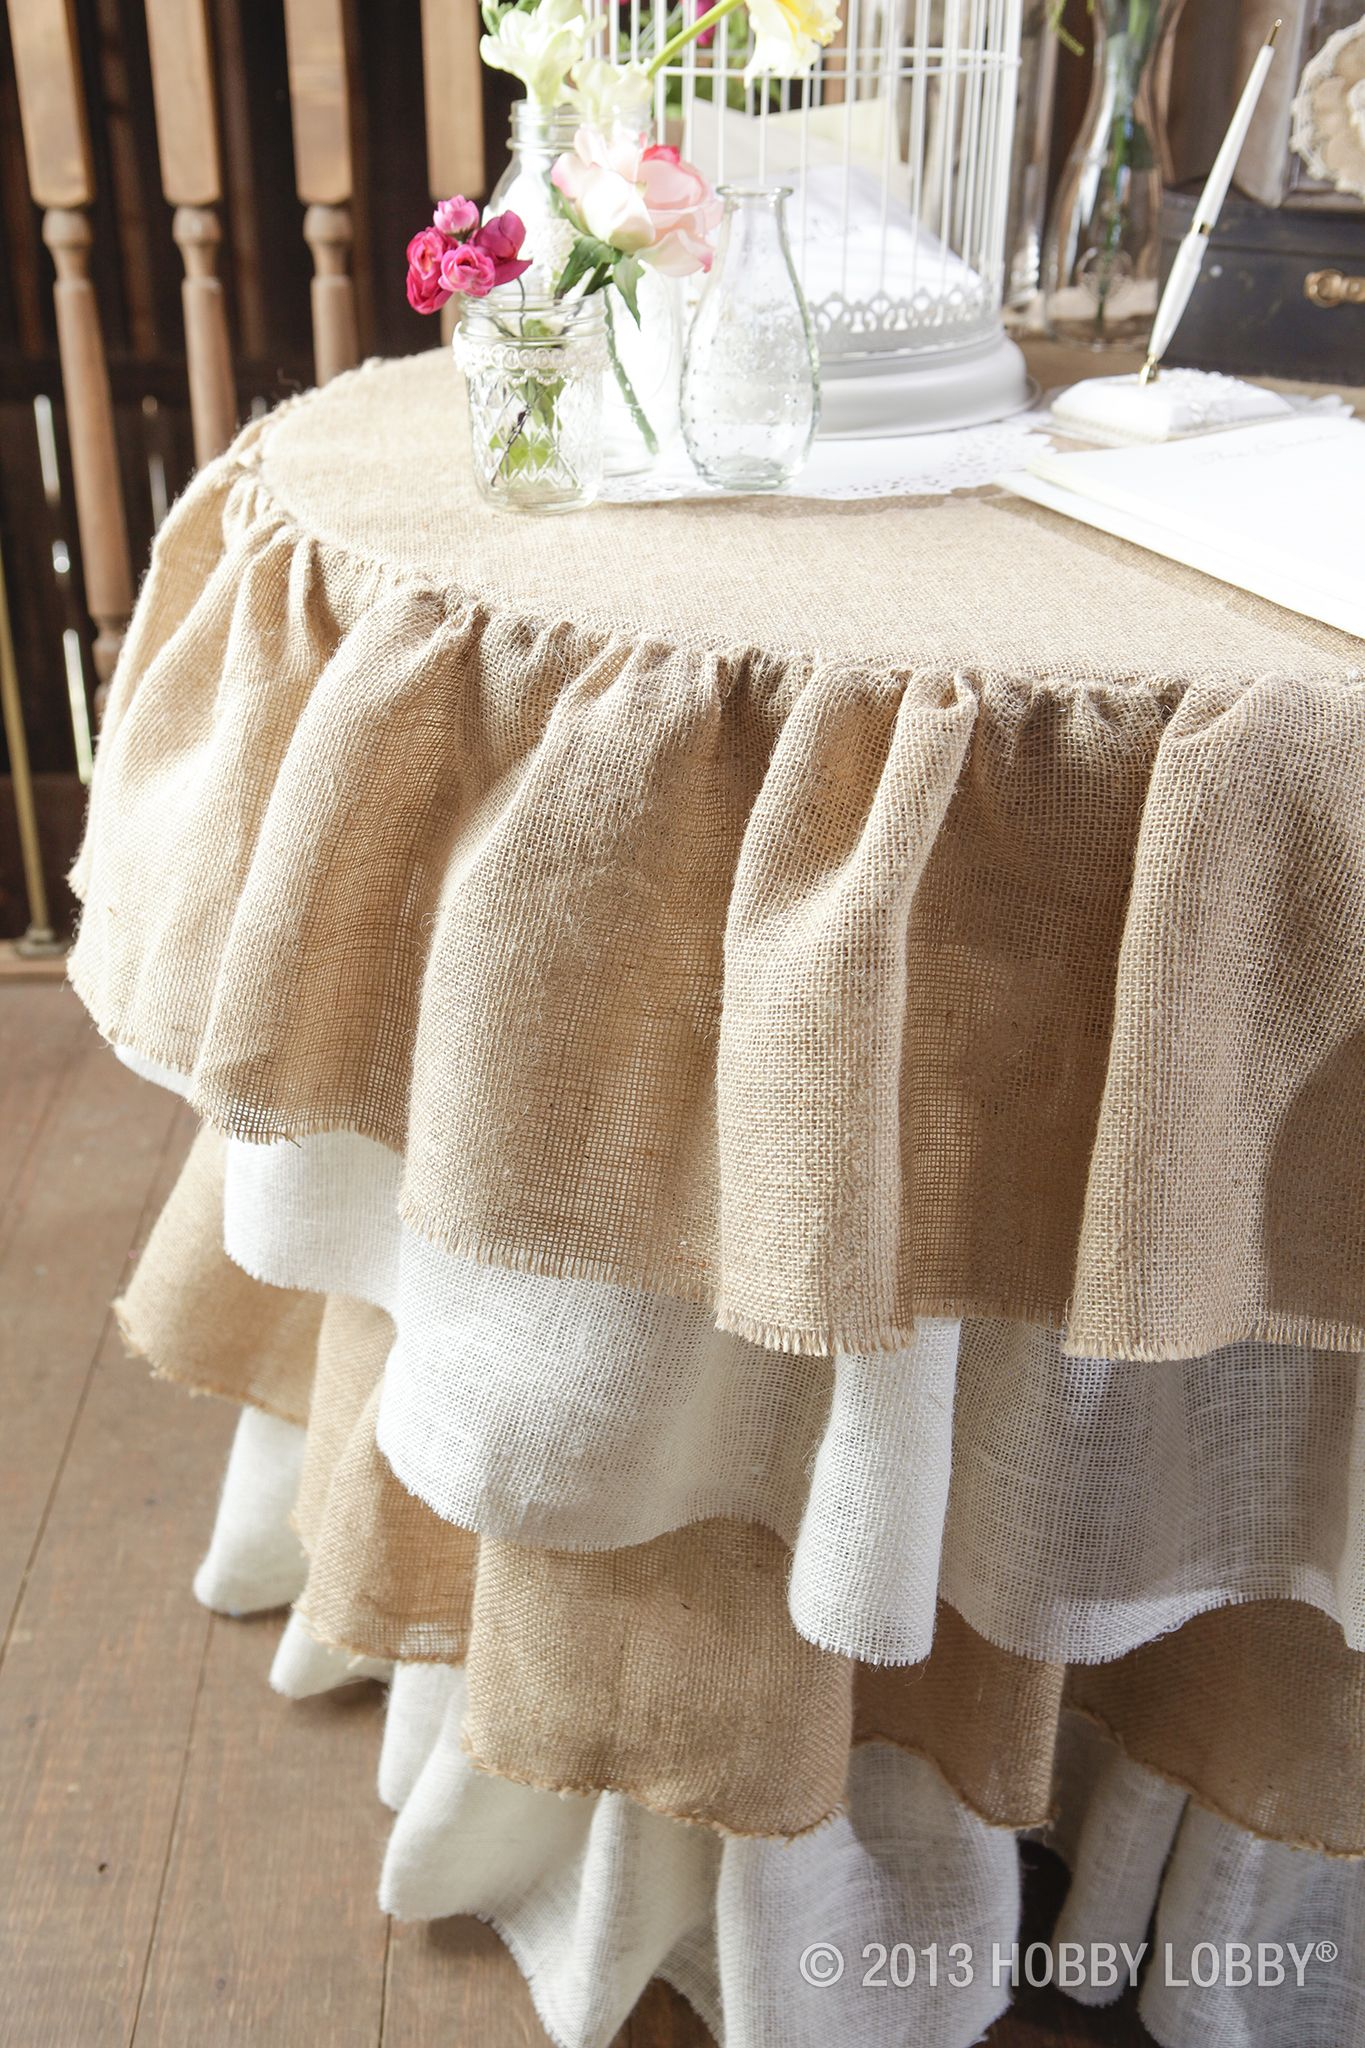 High Quality Ruffled Burlap Table Skirt, Rustic, Elegant And Girly All At The Same Time.